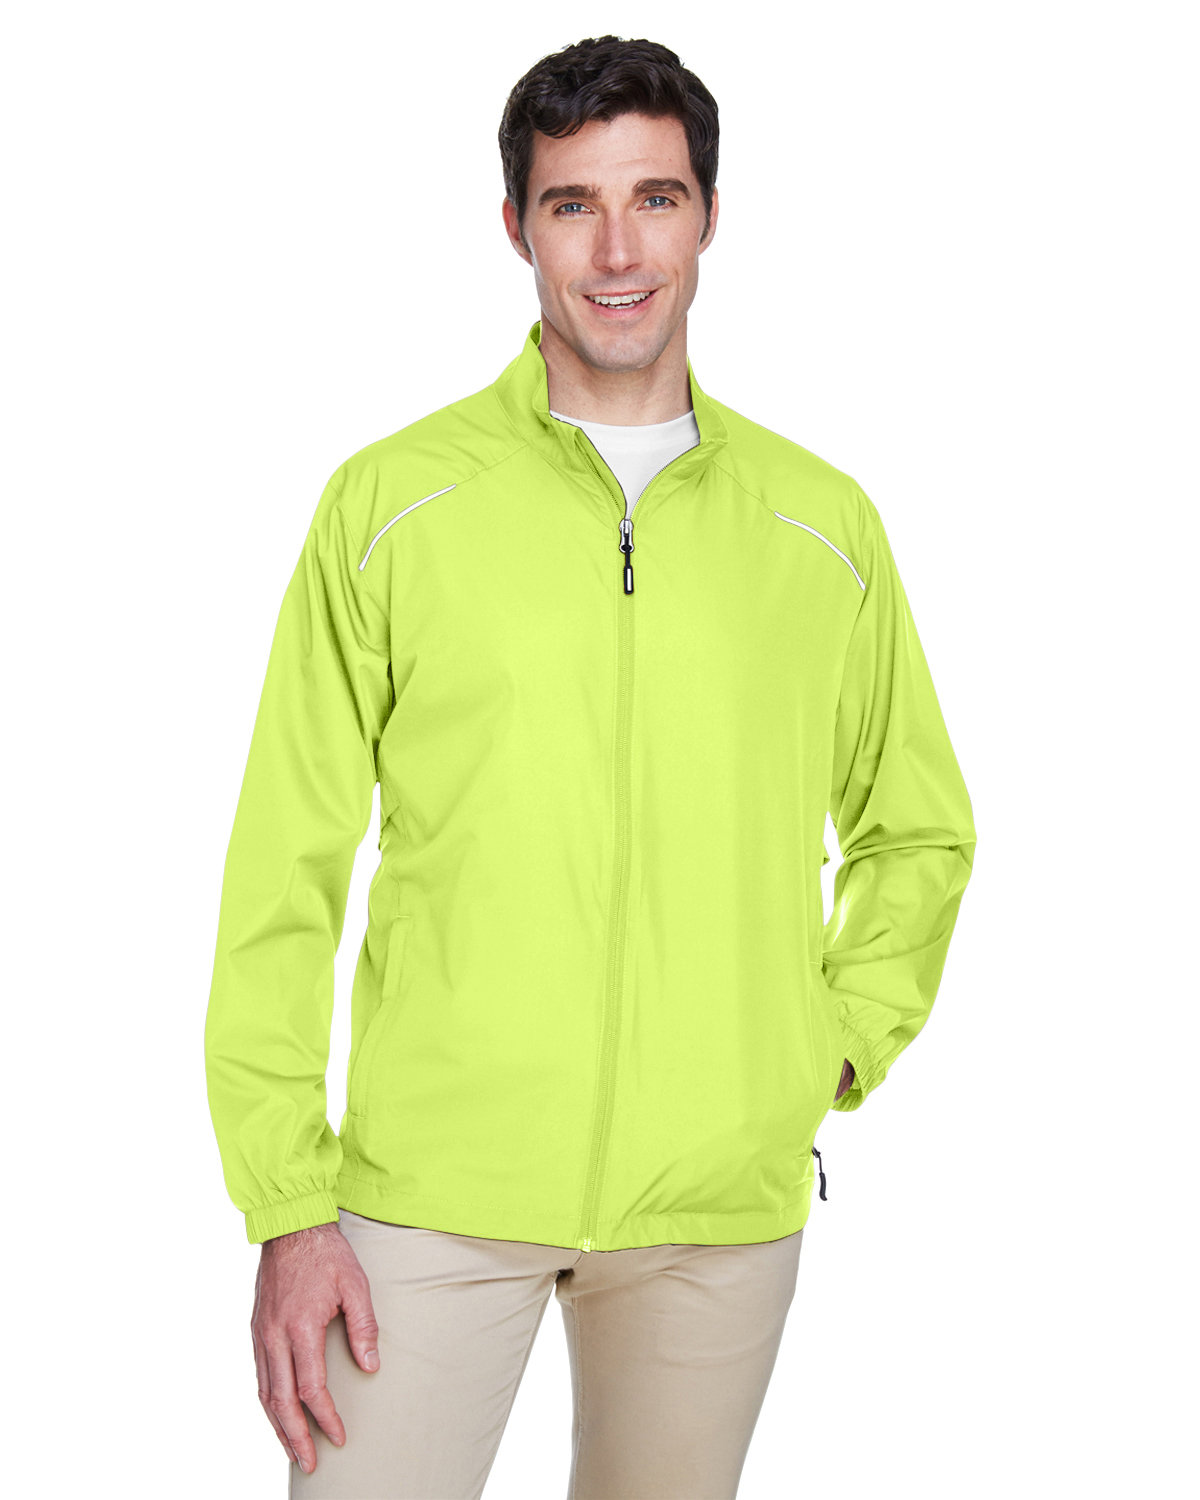 Core 365 Men's Motivate Unlined Lightweight Jacket SAFETY YELLOW